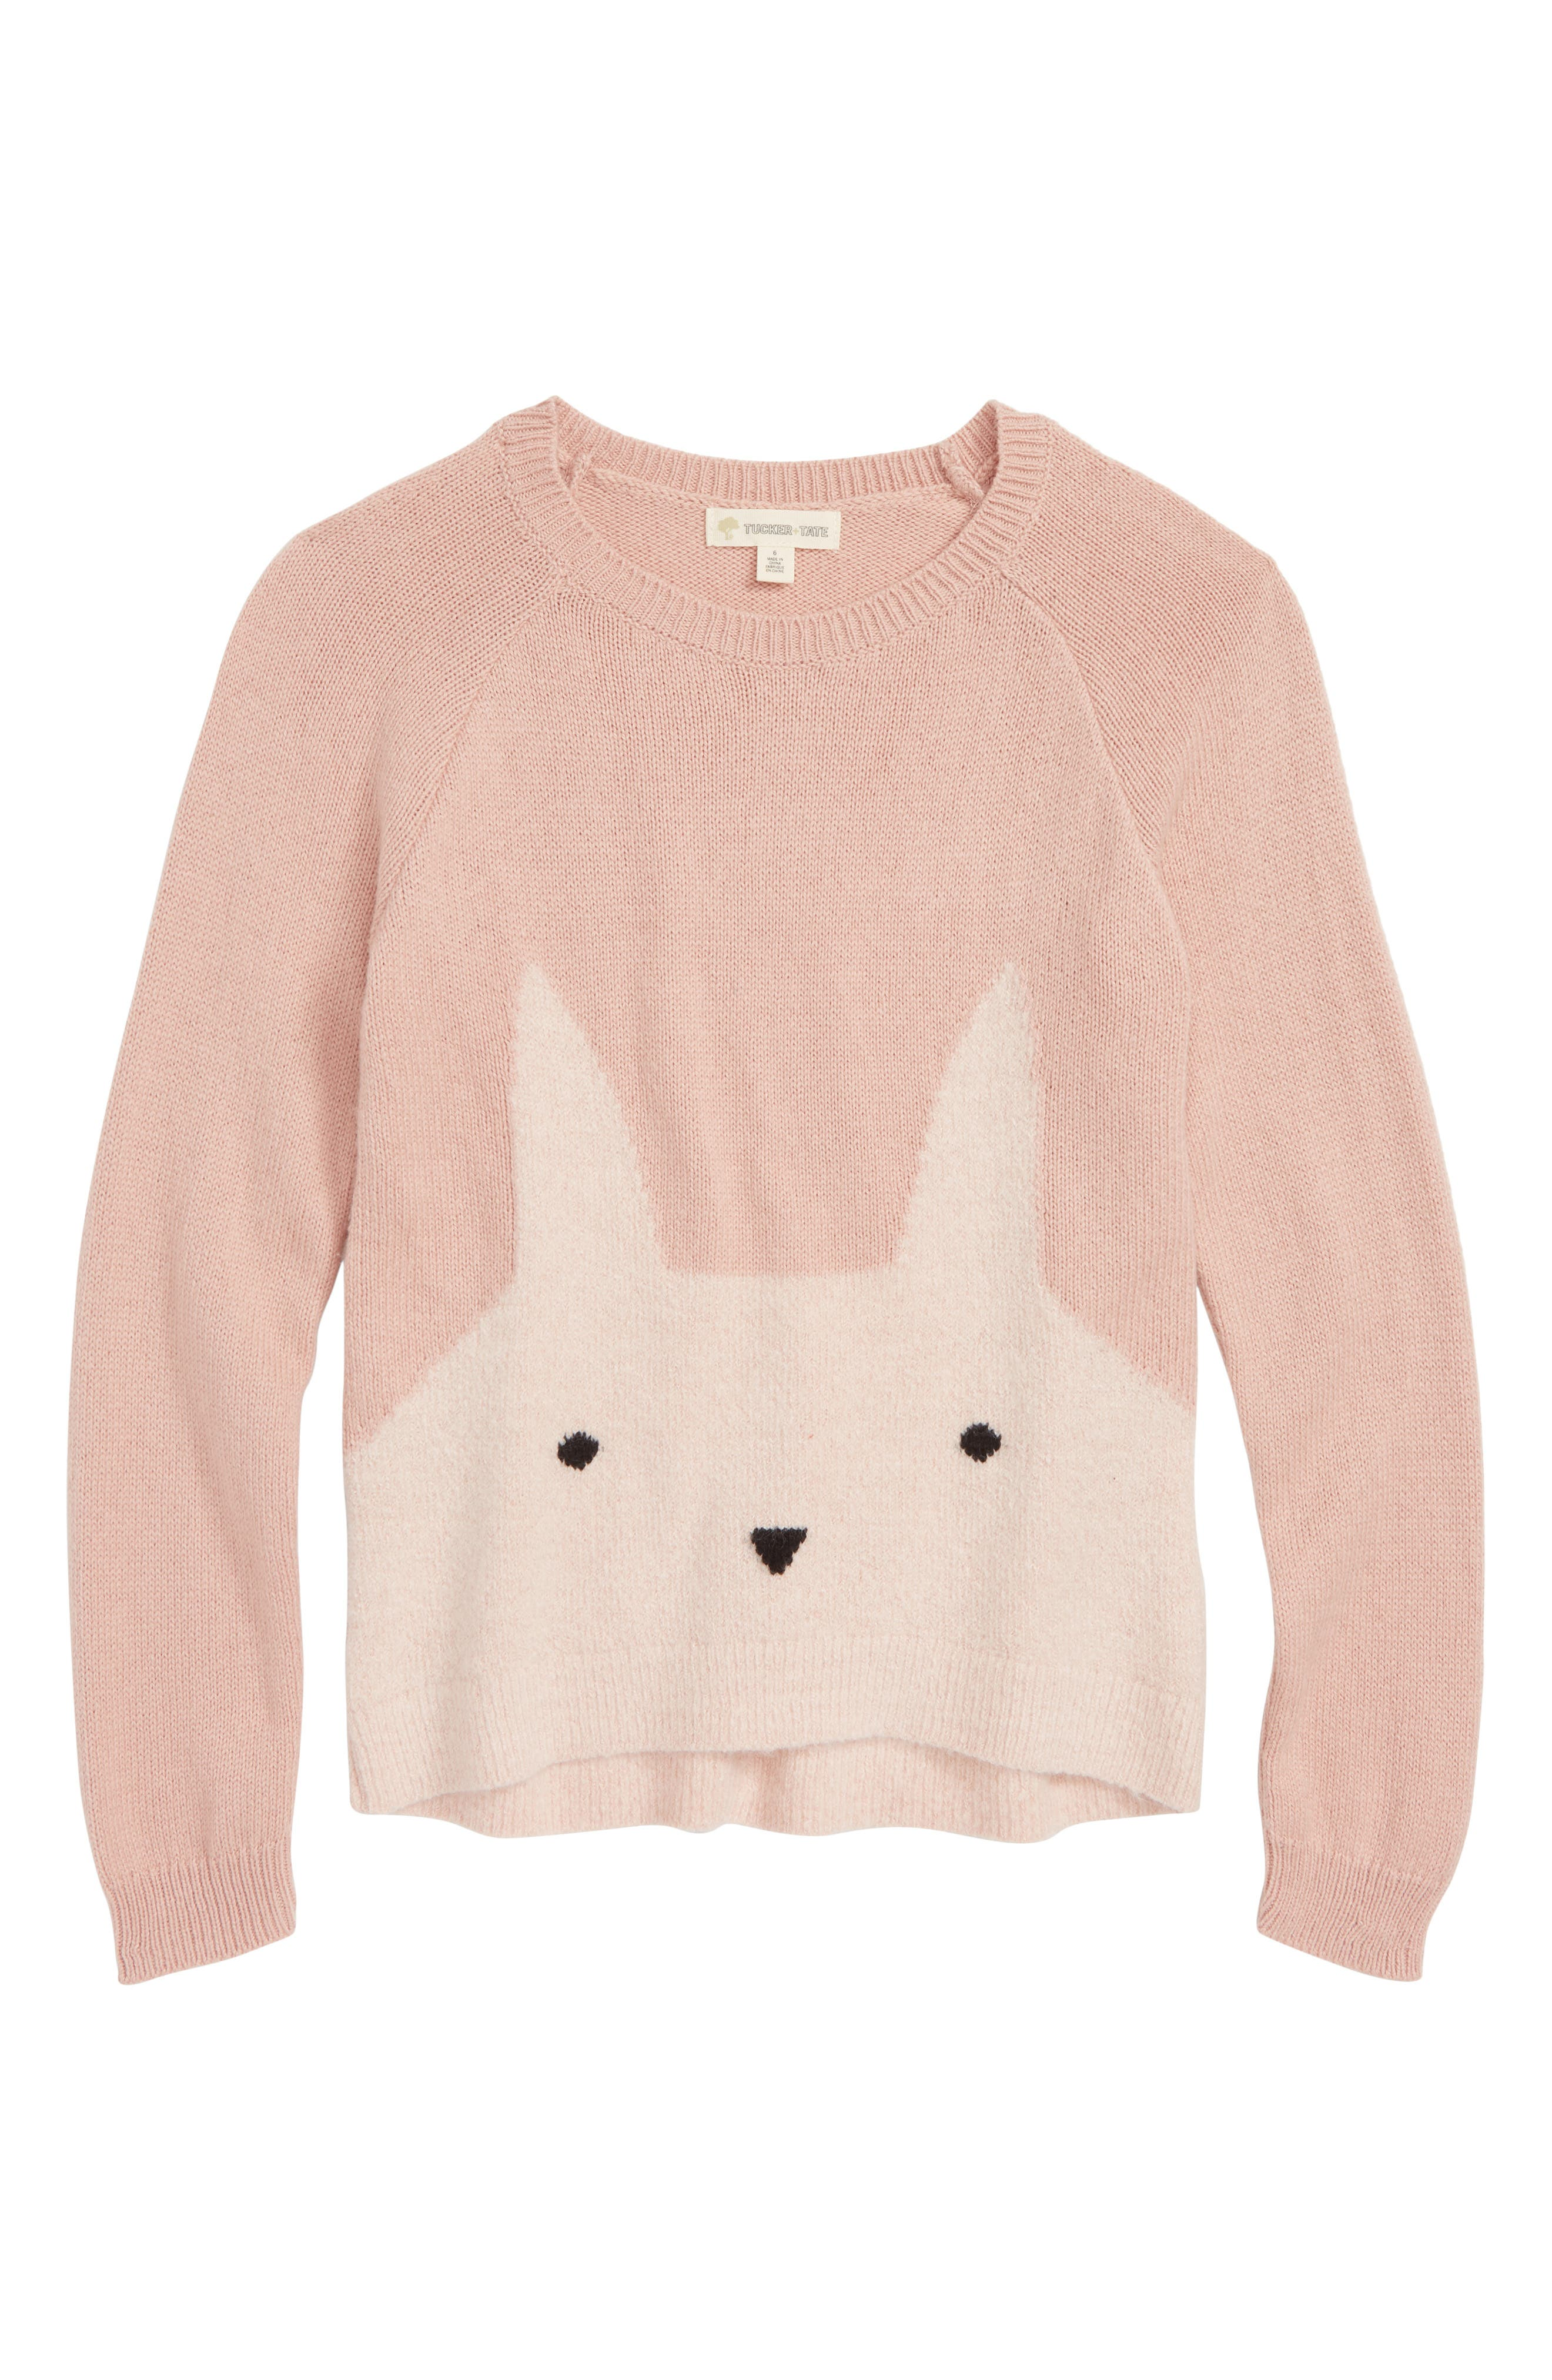 Icon Sweater,                             Main thumbnail 1, color,                             PINK PEACHSKIN BUNNY